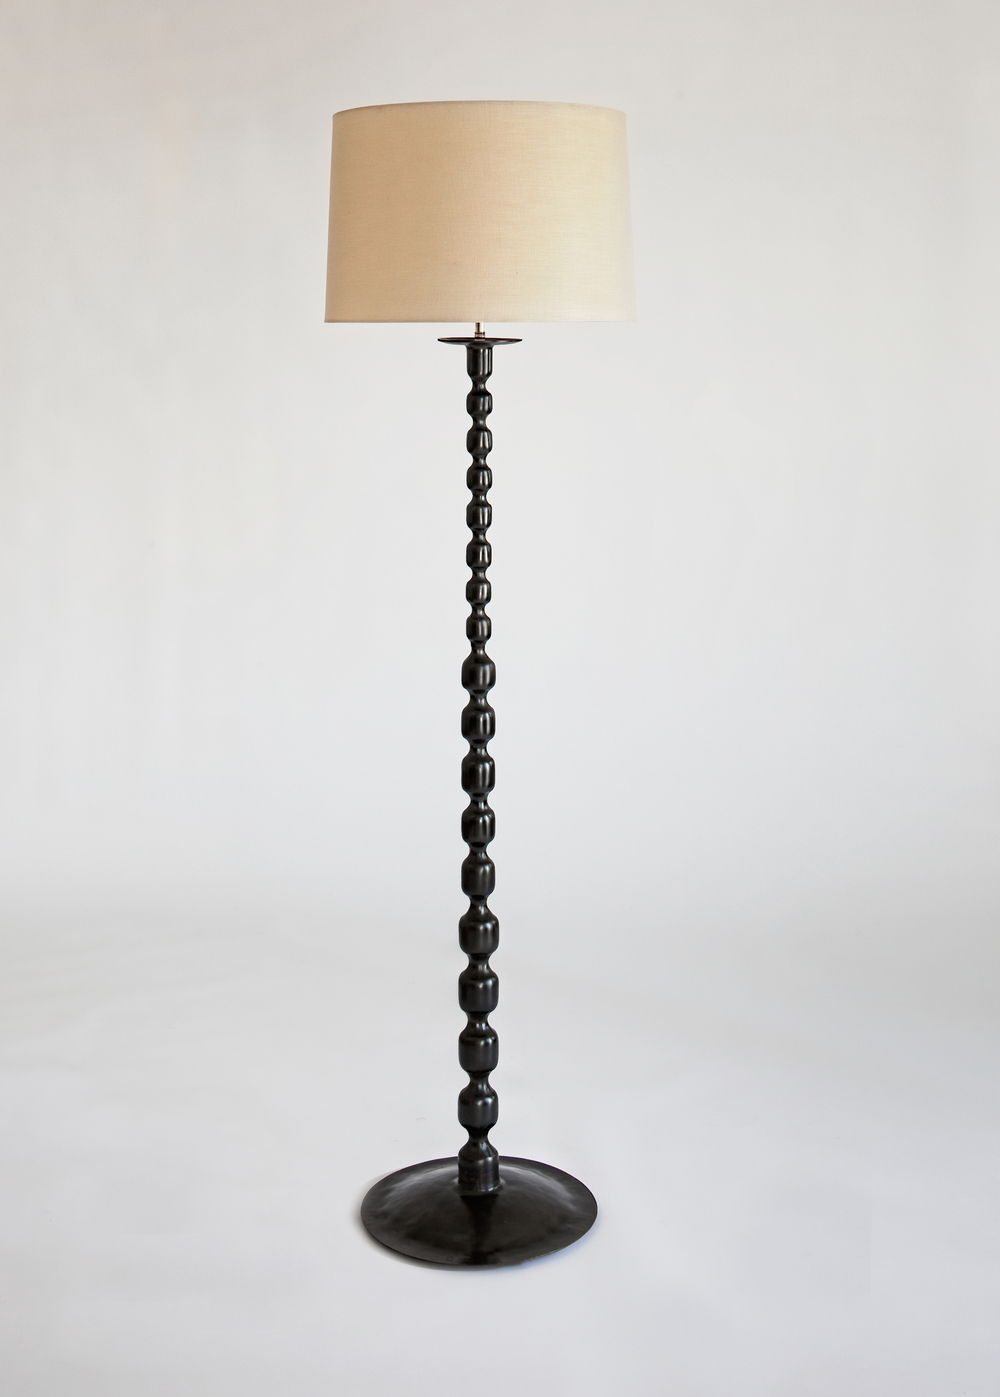 Pernula Floor Lamp